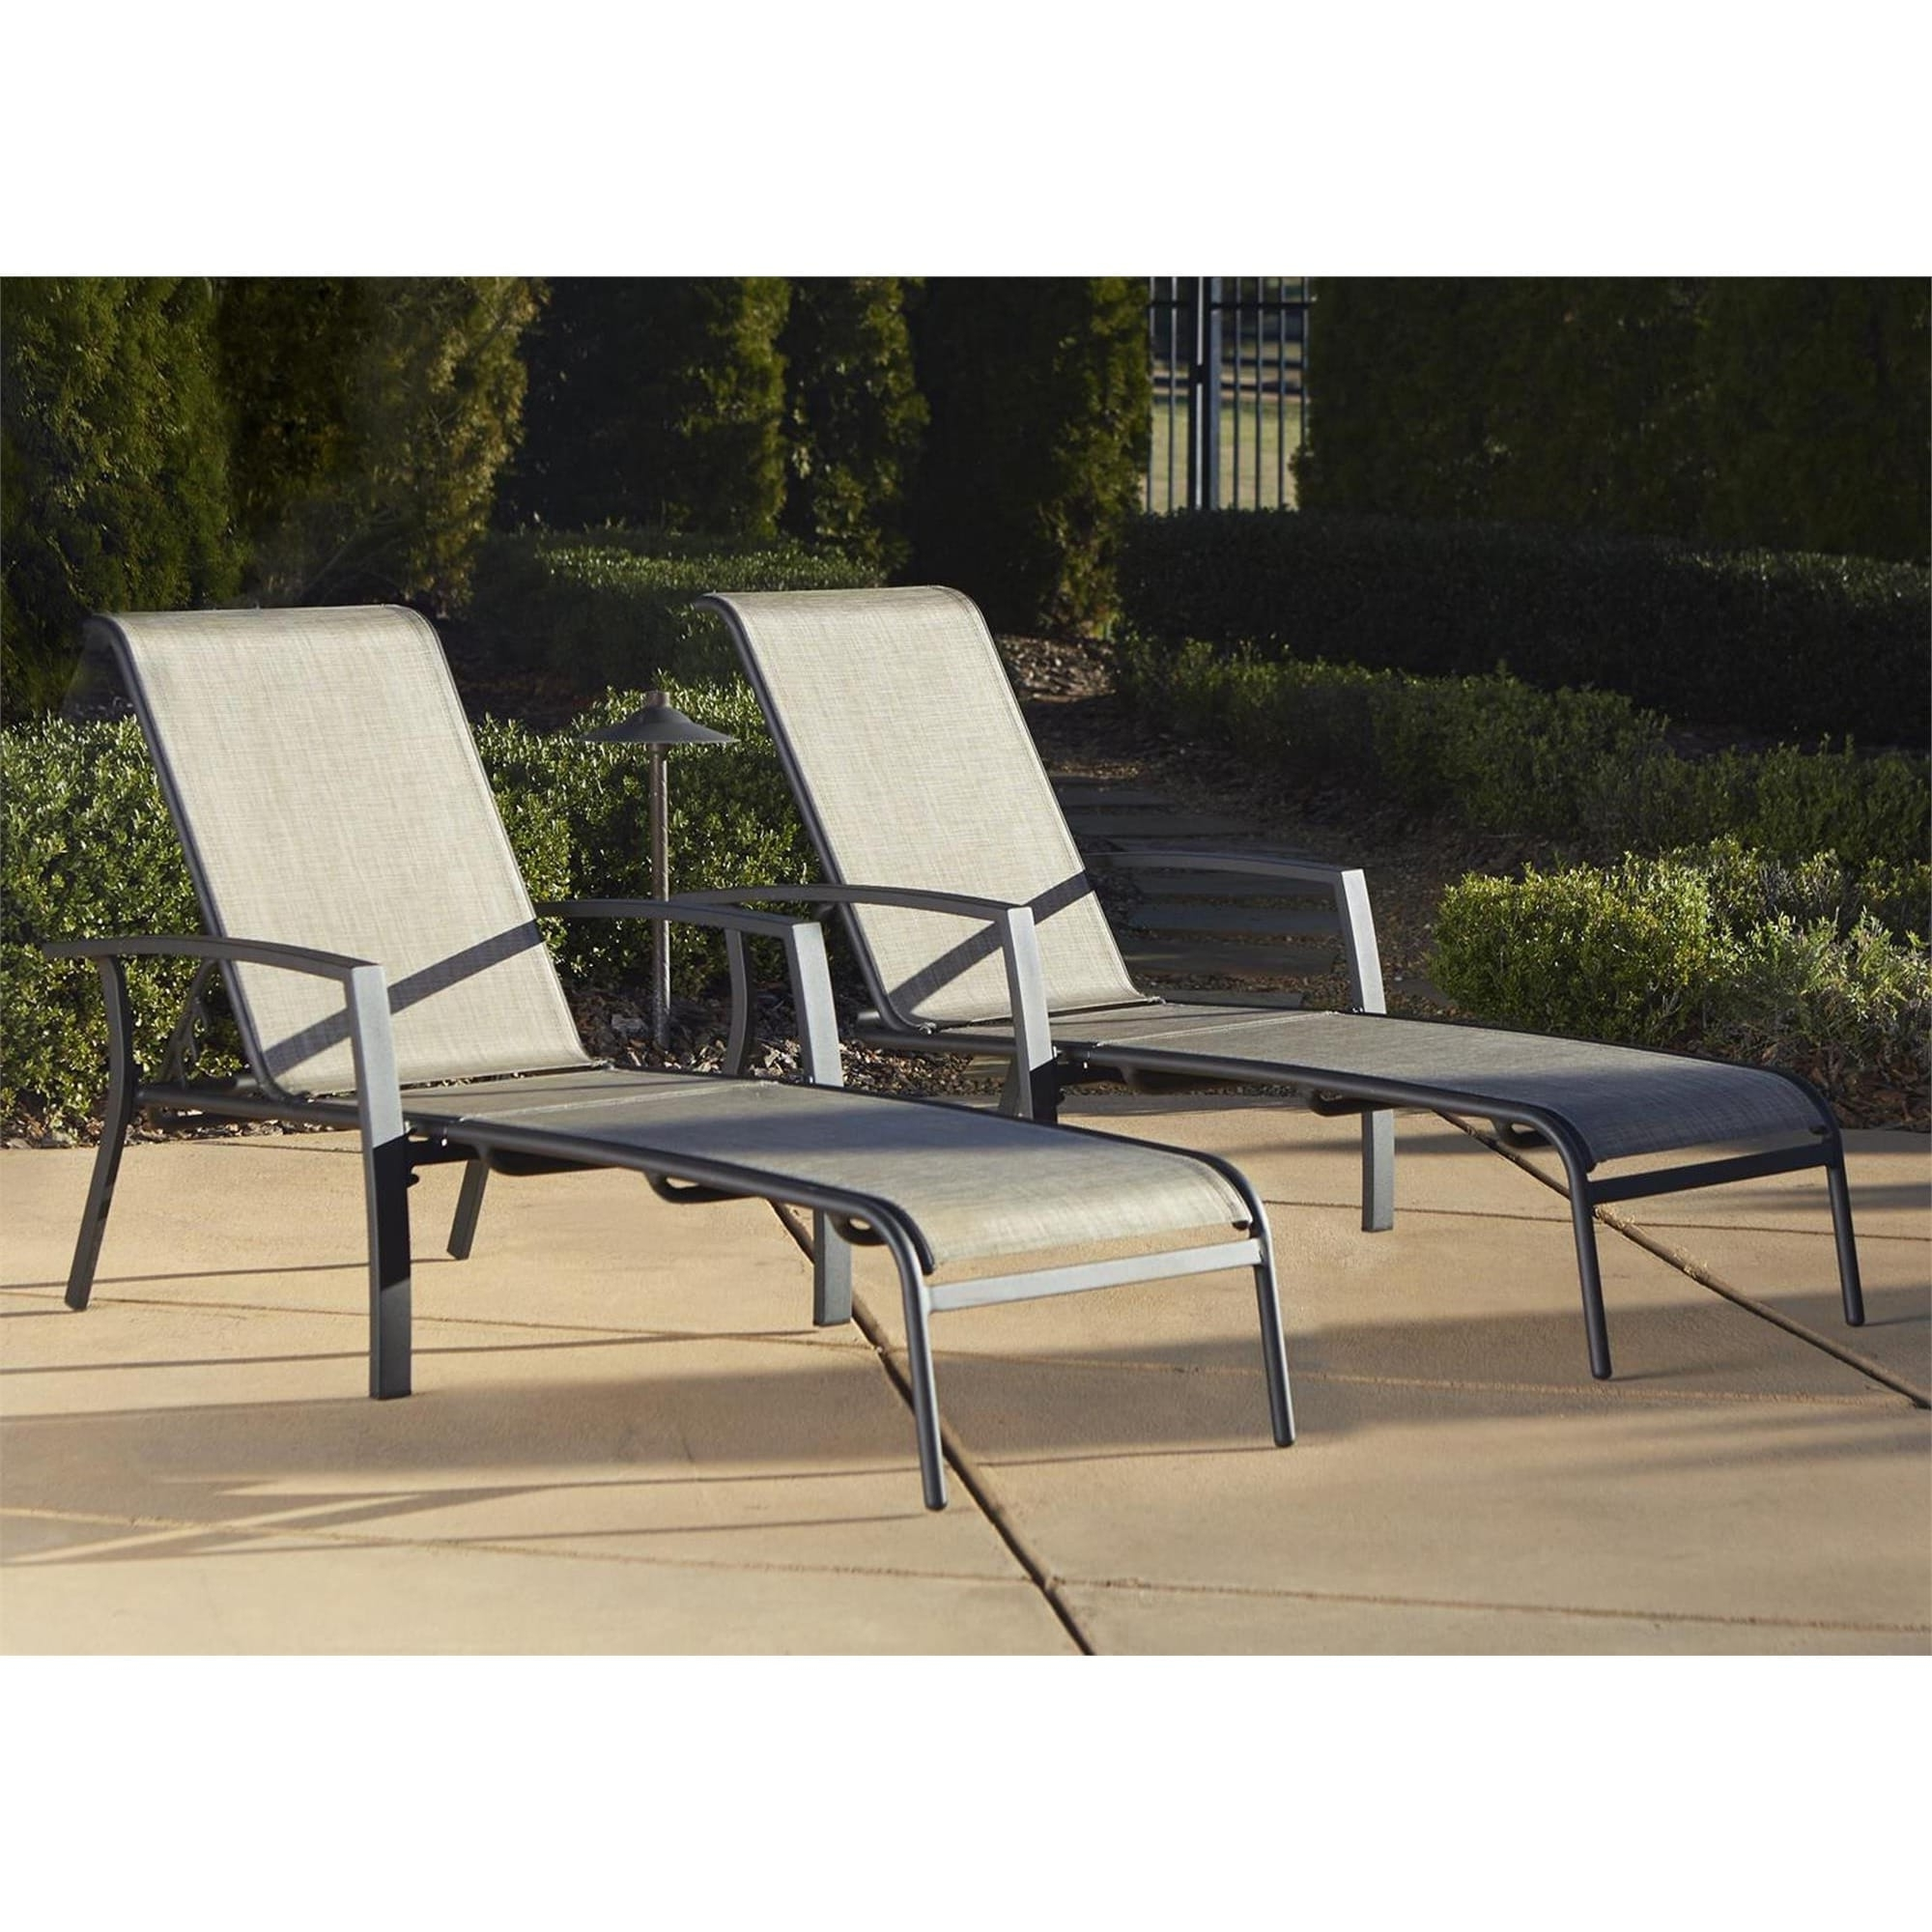 Cosco Outdoor Aluminum Chaise Lounge Chair (Set Of 2) – Free Regarding Well Liked Aluminum Chaise Lounge Outdoor Chairs (View 5 of 15)